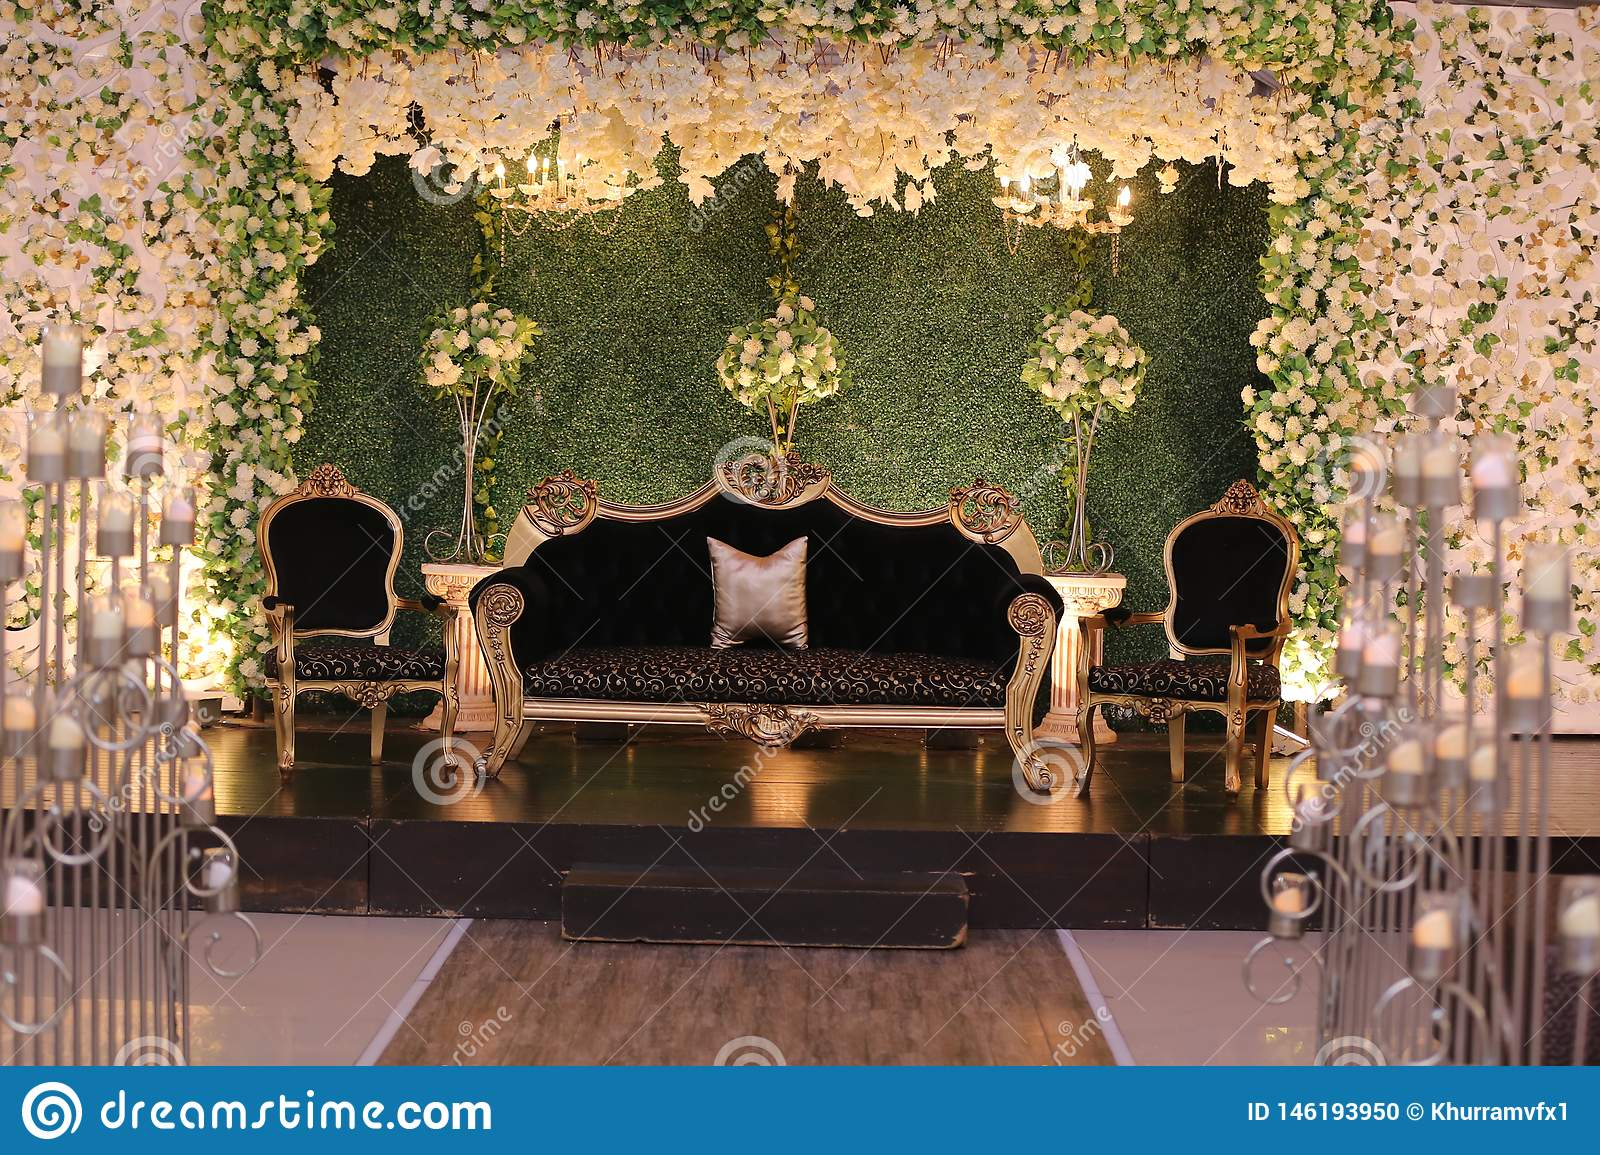 Wedding Stage Decoration In Pakistan Stock Photo   Image of trend ...